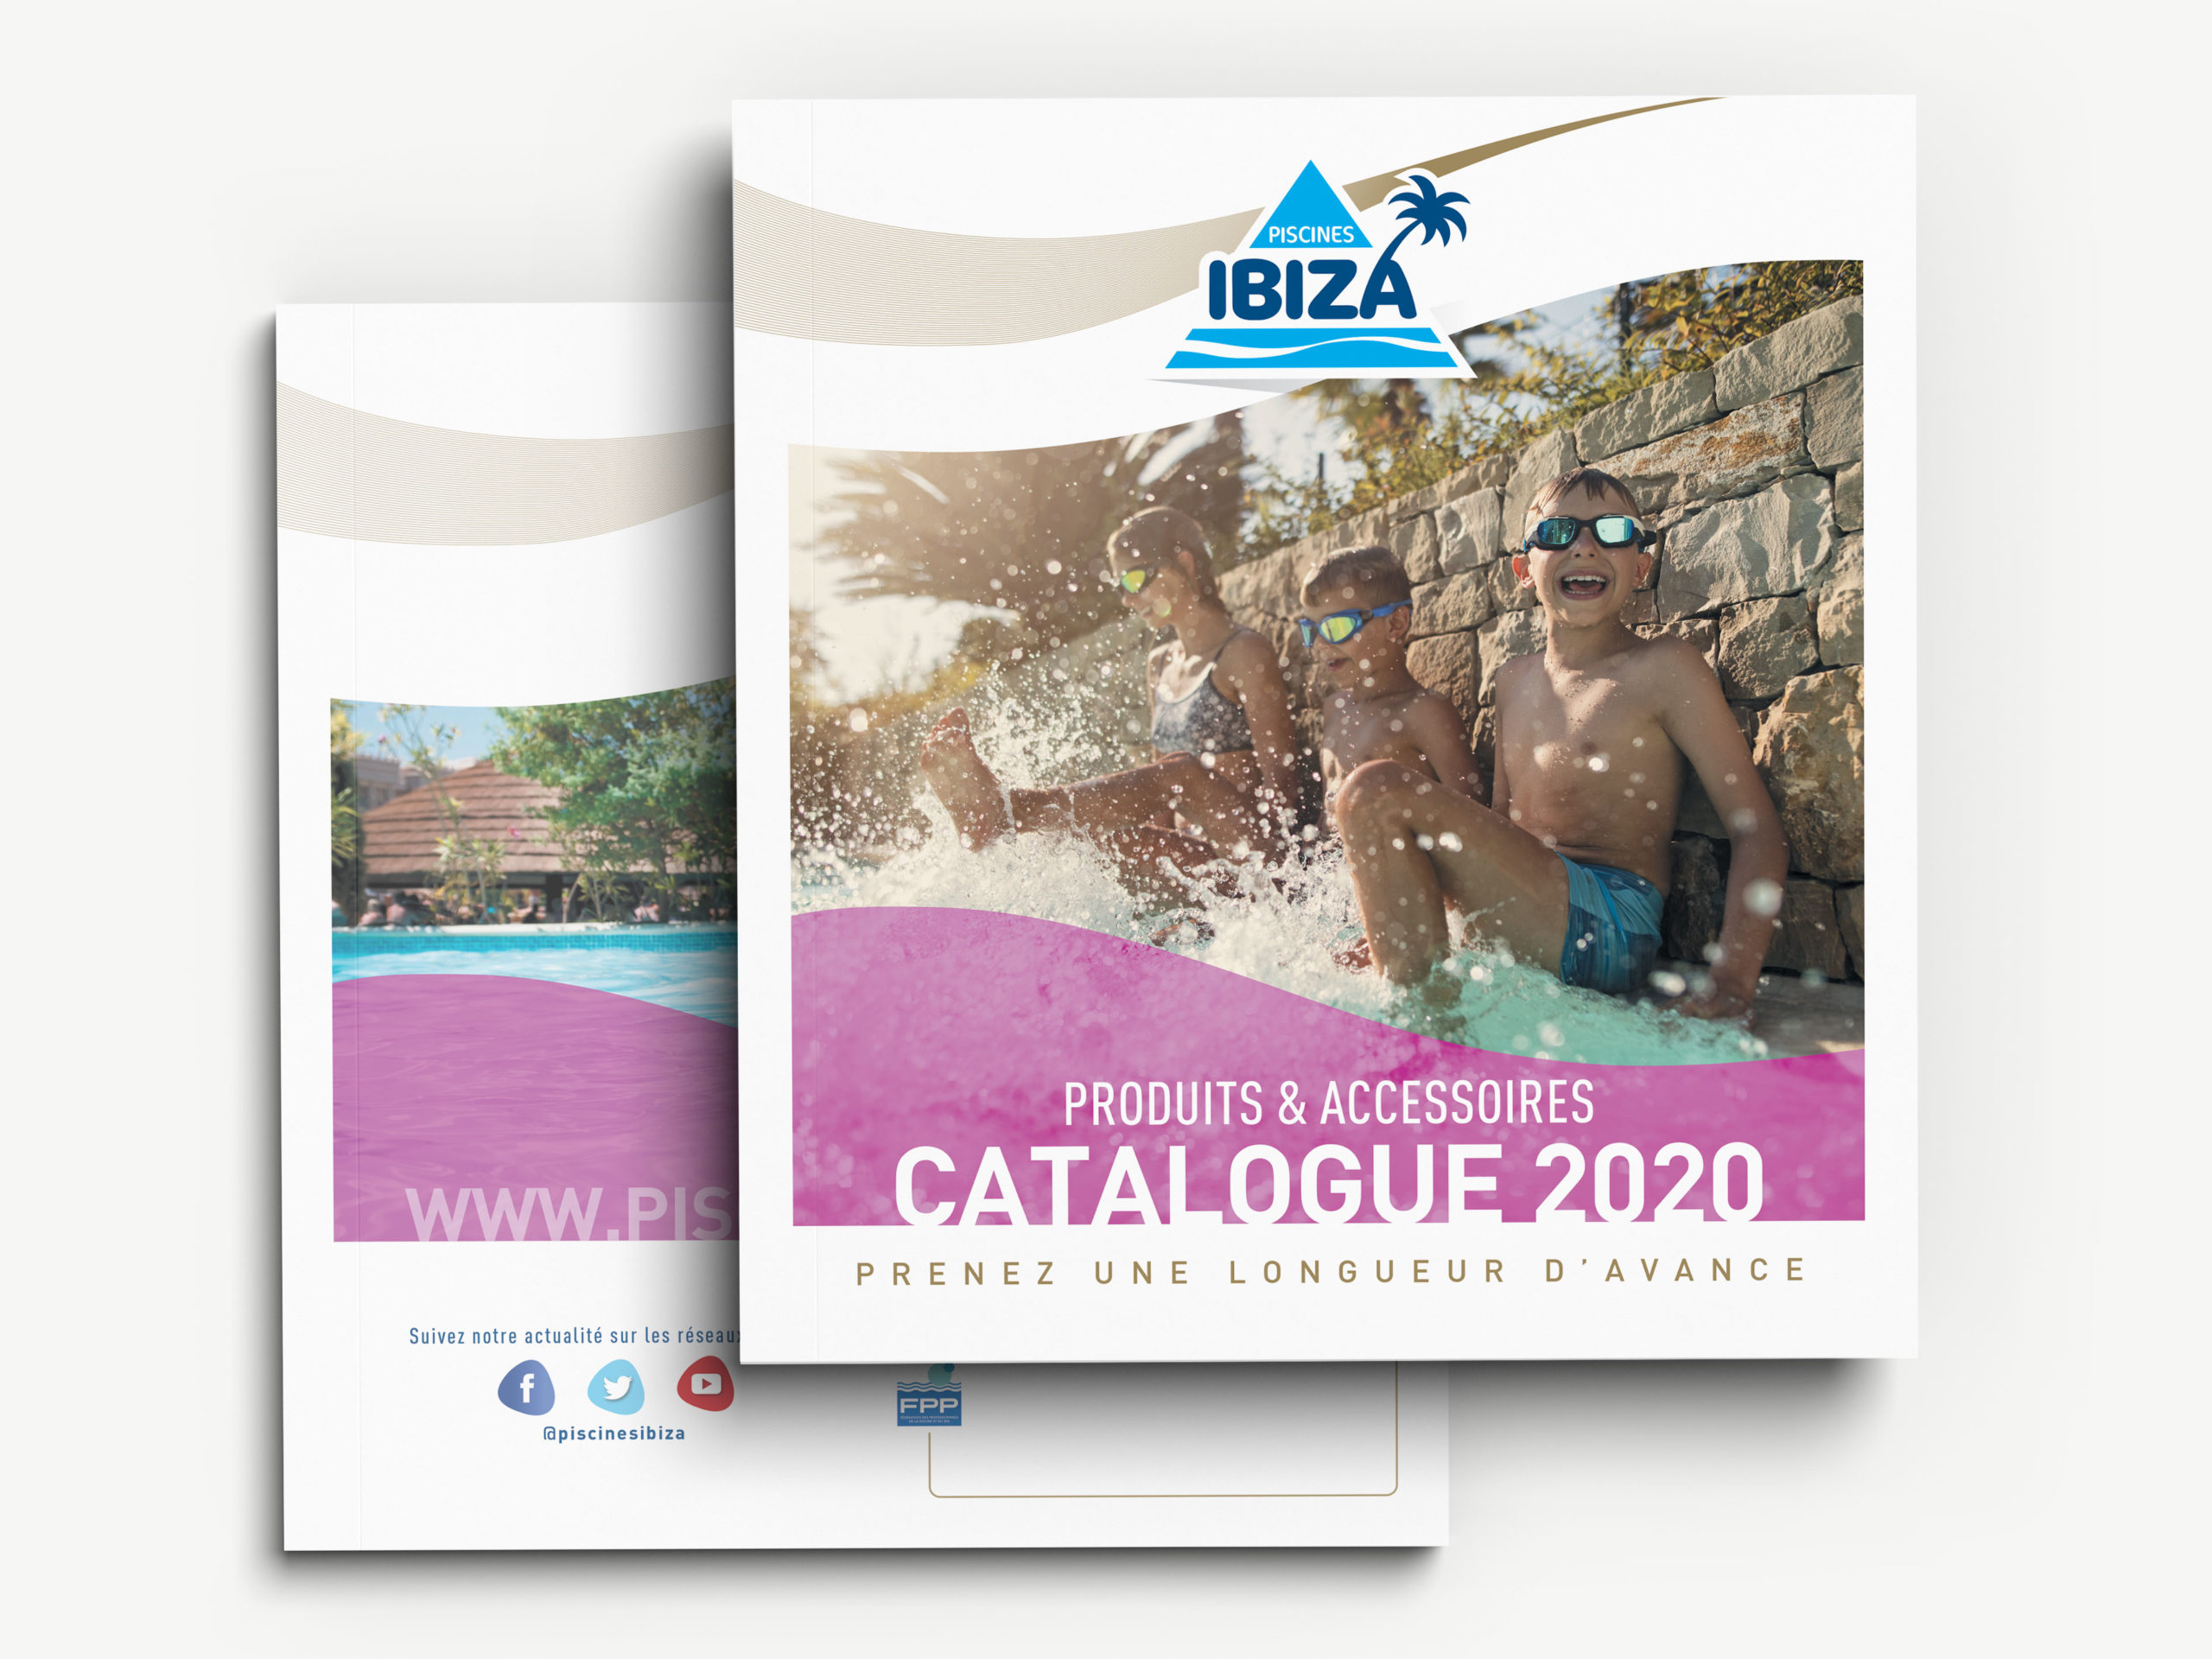 Ibiza-catalogue2020-01-scaled.jpg